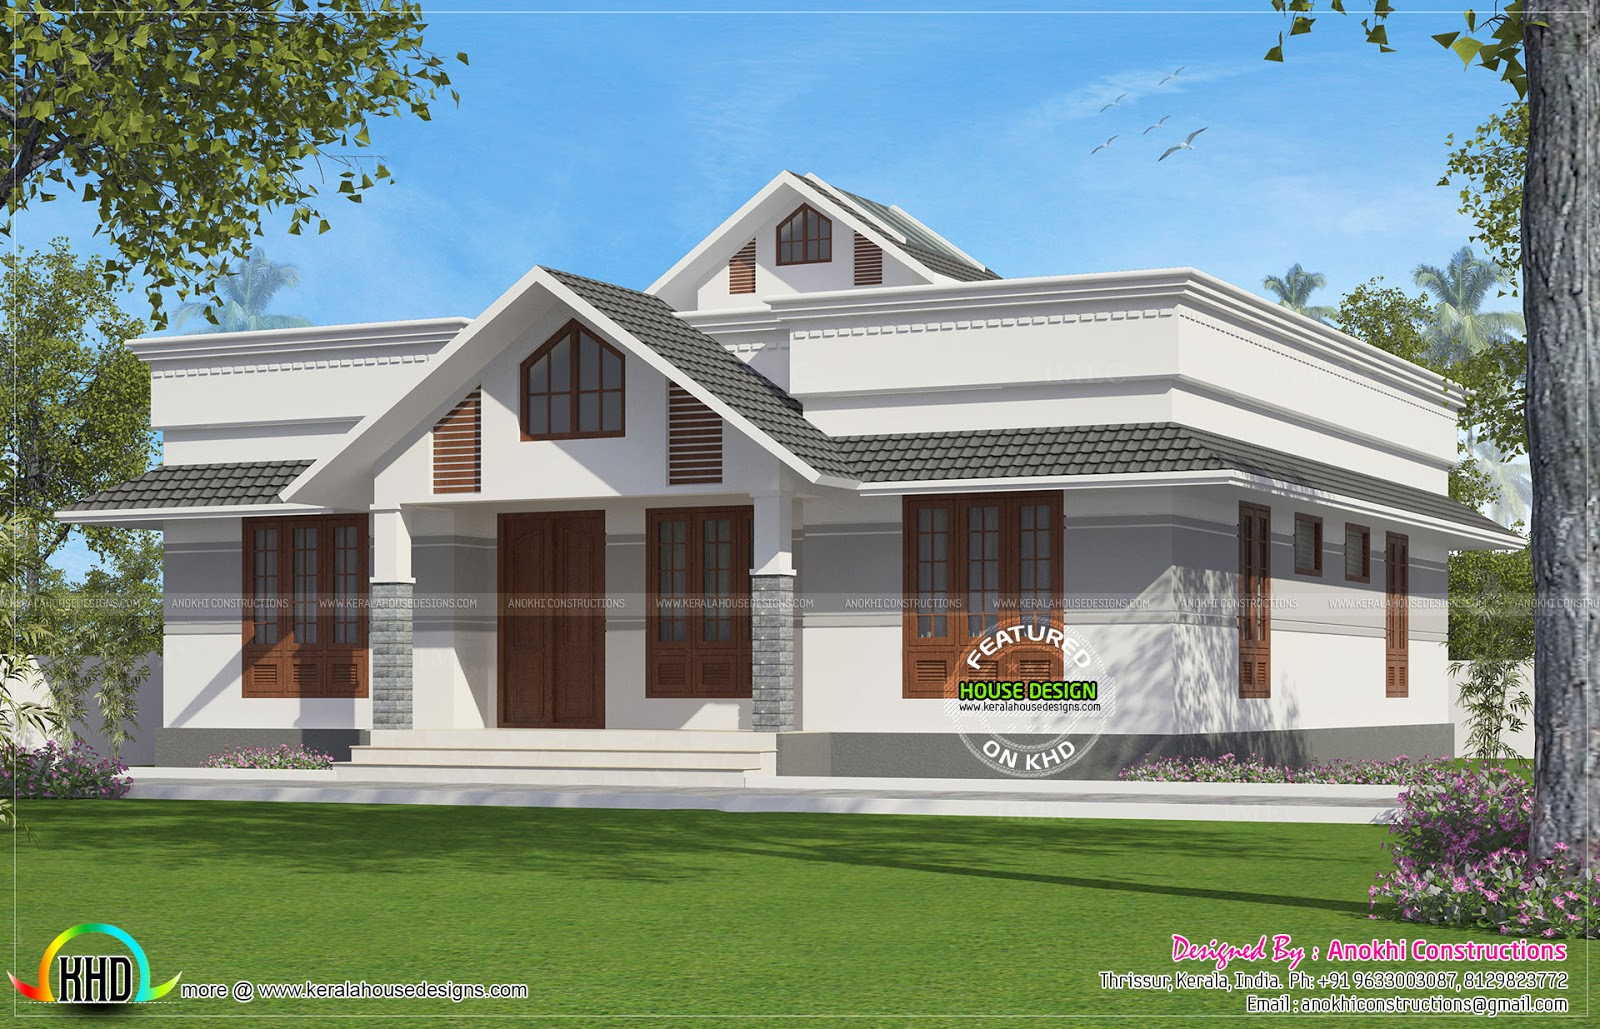 1330 square feet small house plan kerala home design and for Home floor plans with estimated cost to build